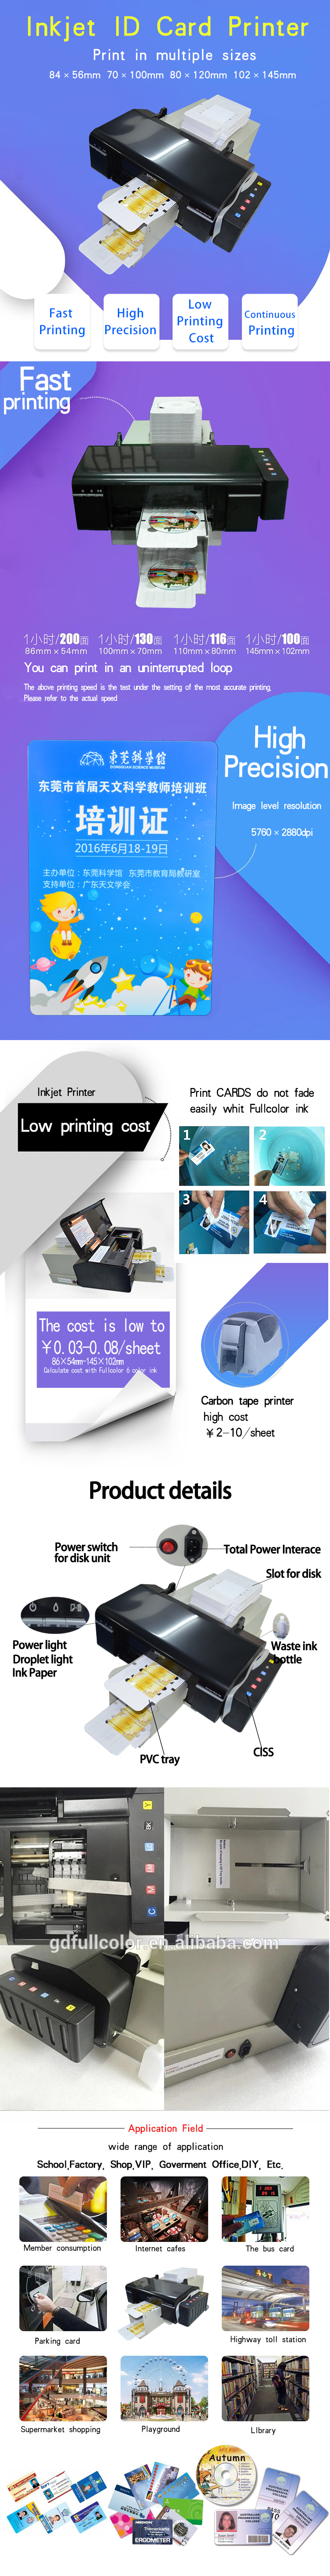 Continue 100 PCS ID Card Printing Machine L805 Inkjet PVC Card Printer